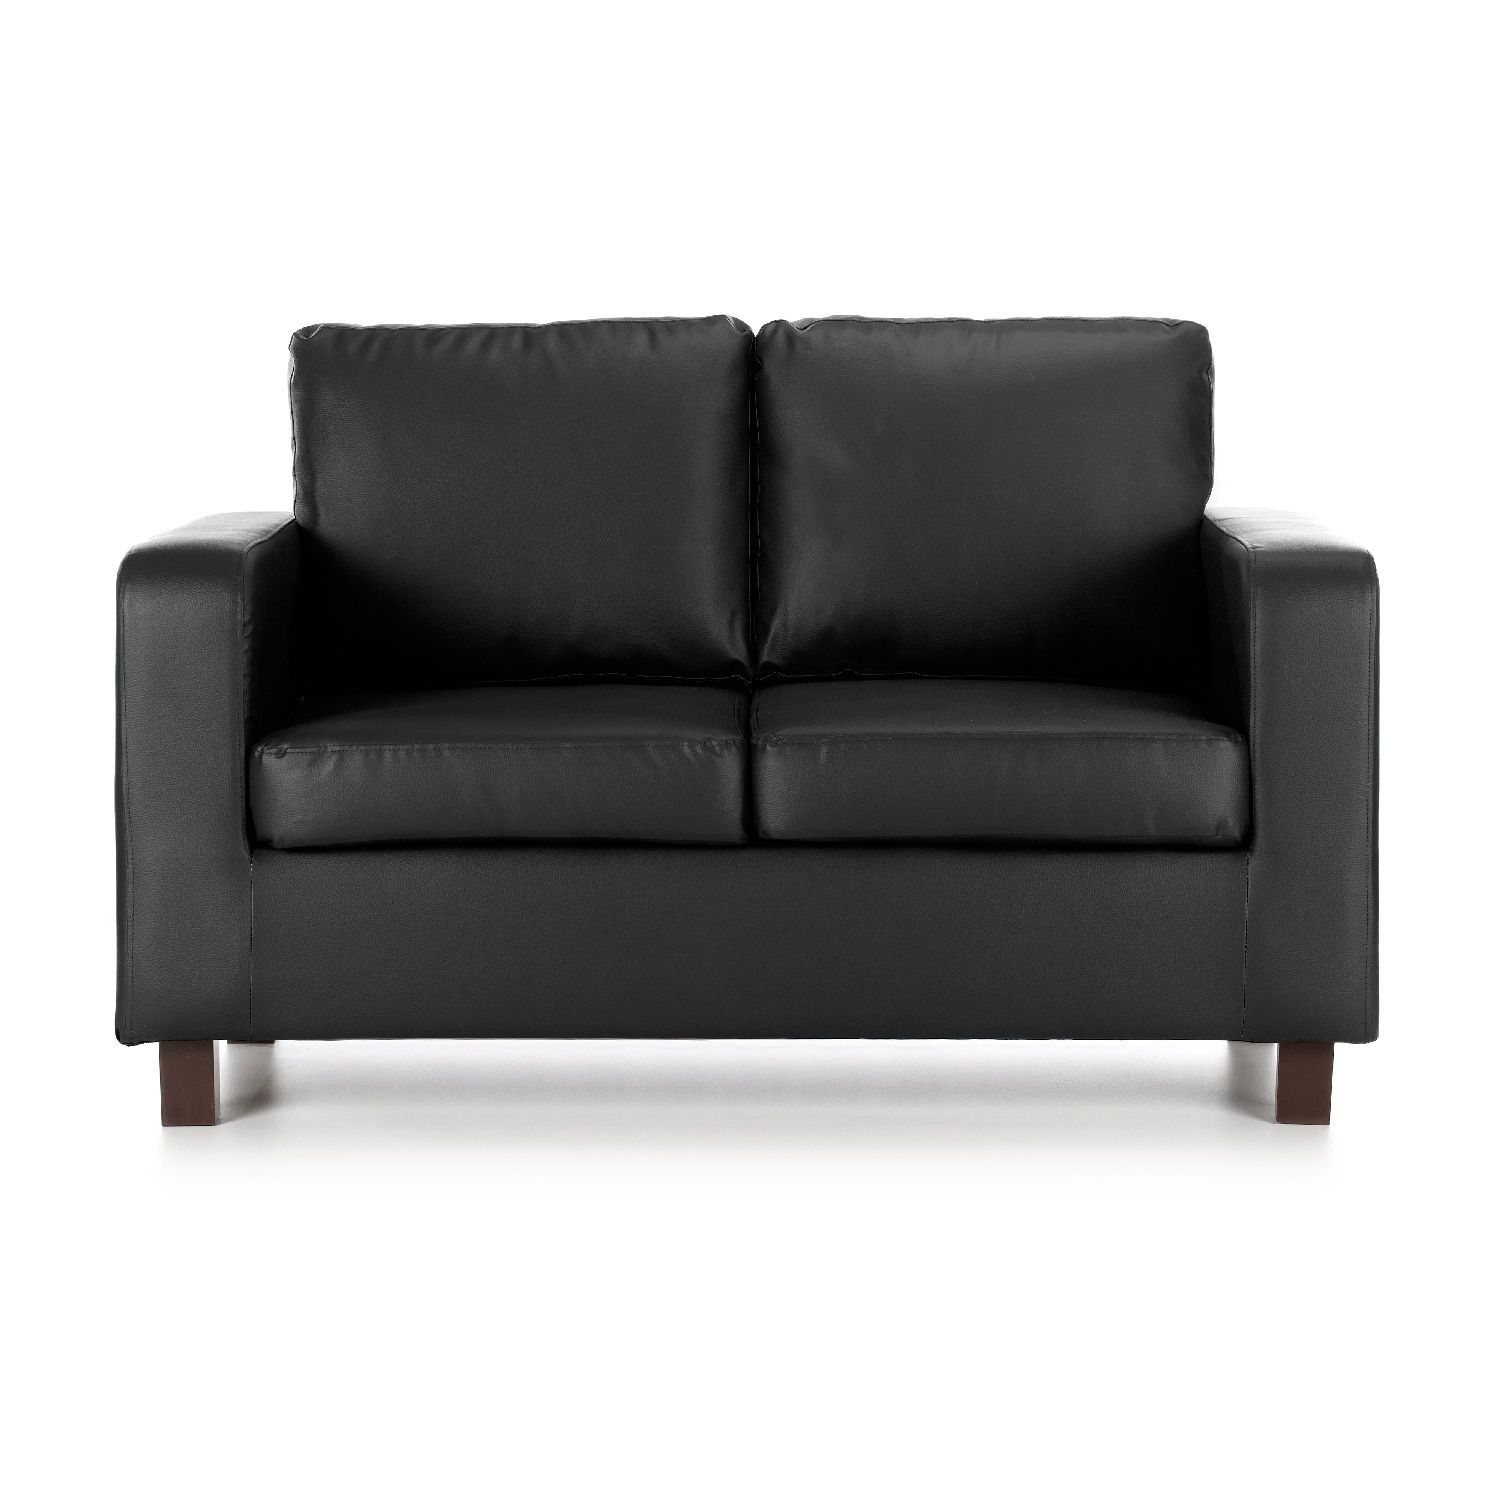 Faux Leather 2 Seater Sofa Bed